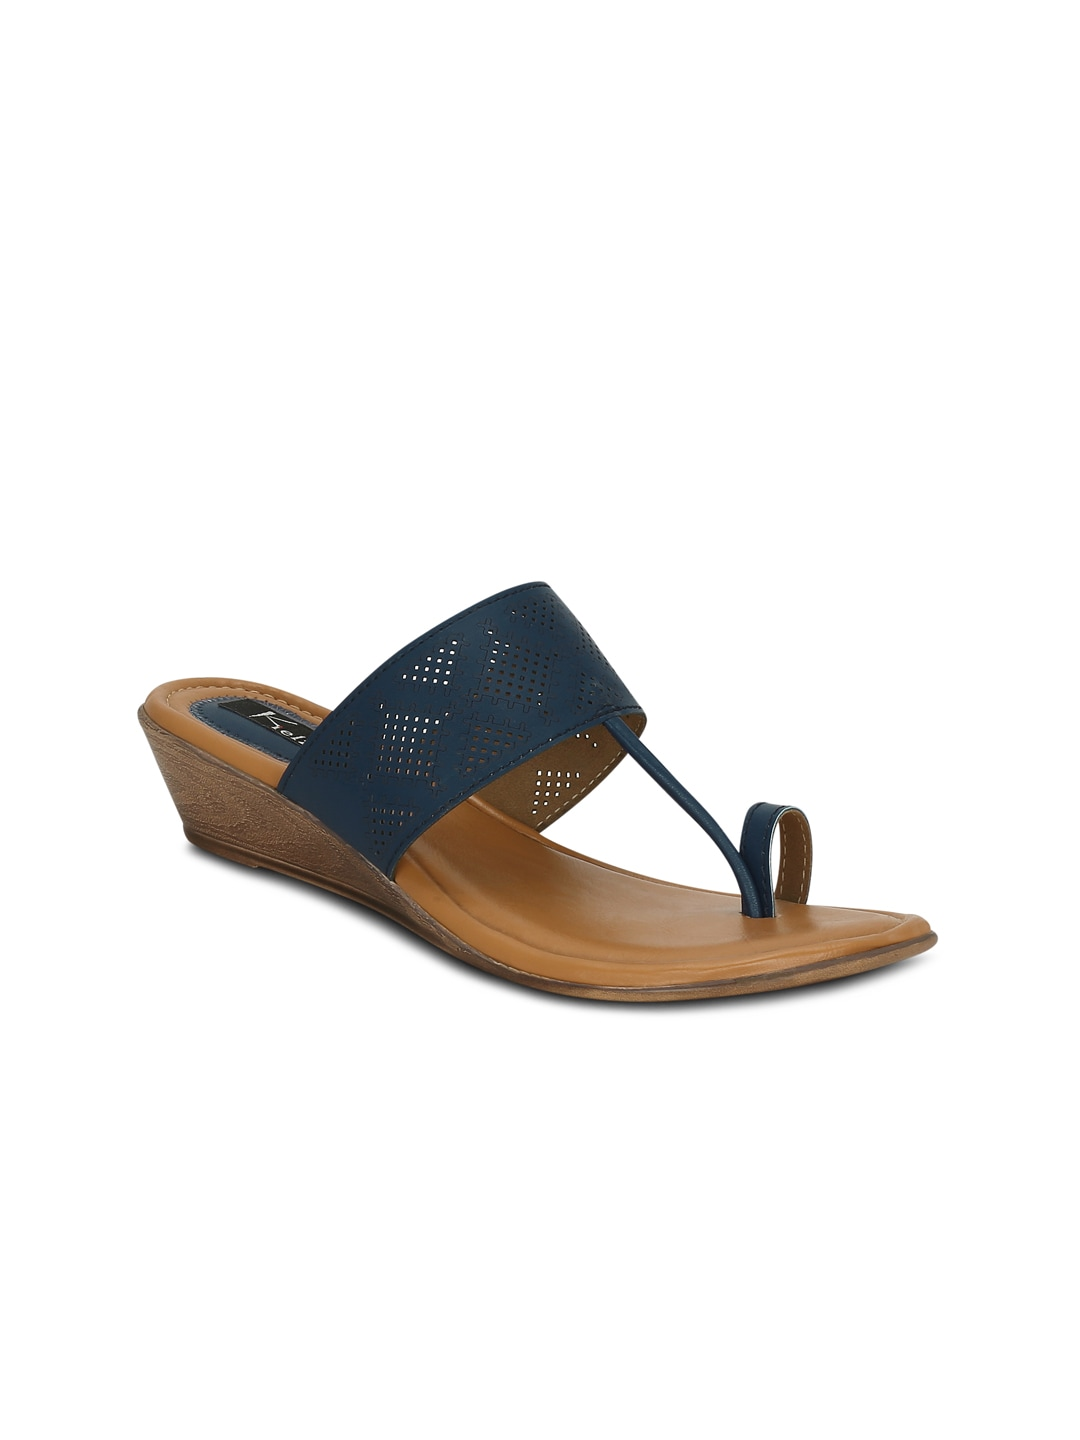 4076d82a0a6 Womens Wedges - Buy Wedges for Women Online at Best Price